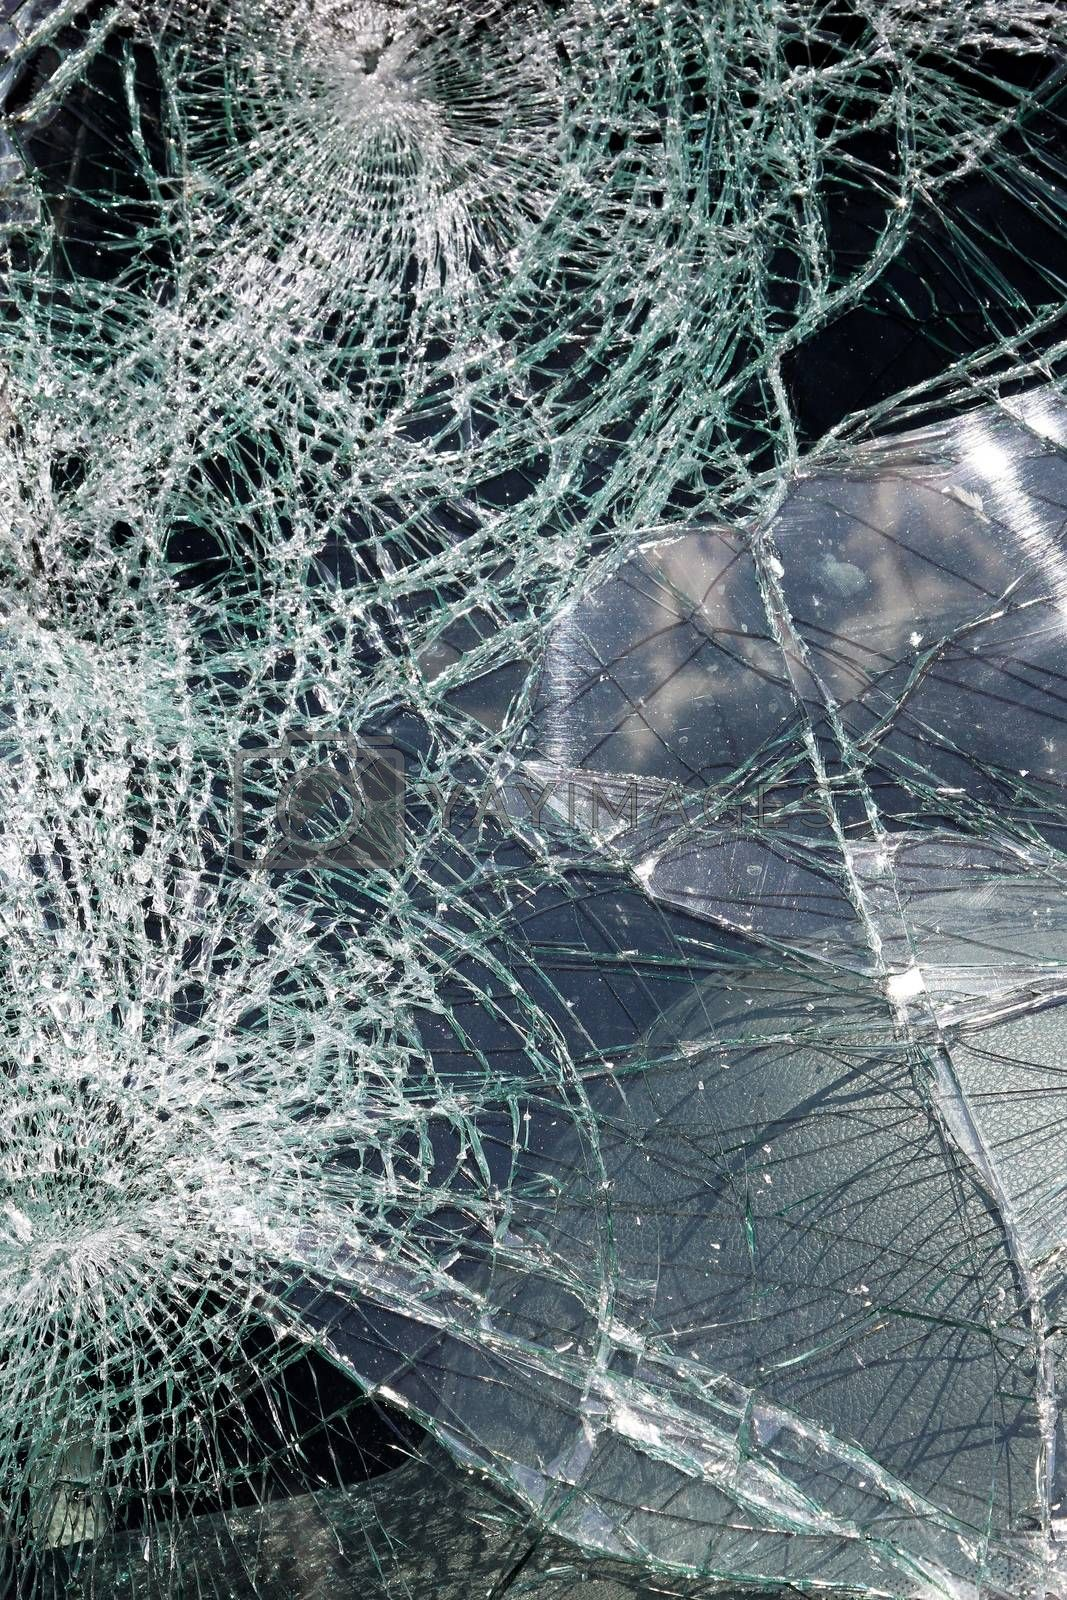 Royalty free image of Cracked windshield by Baloncici